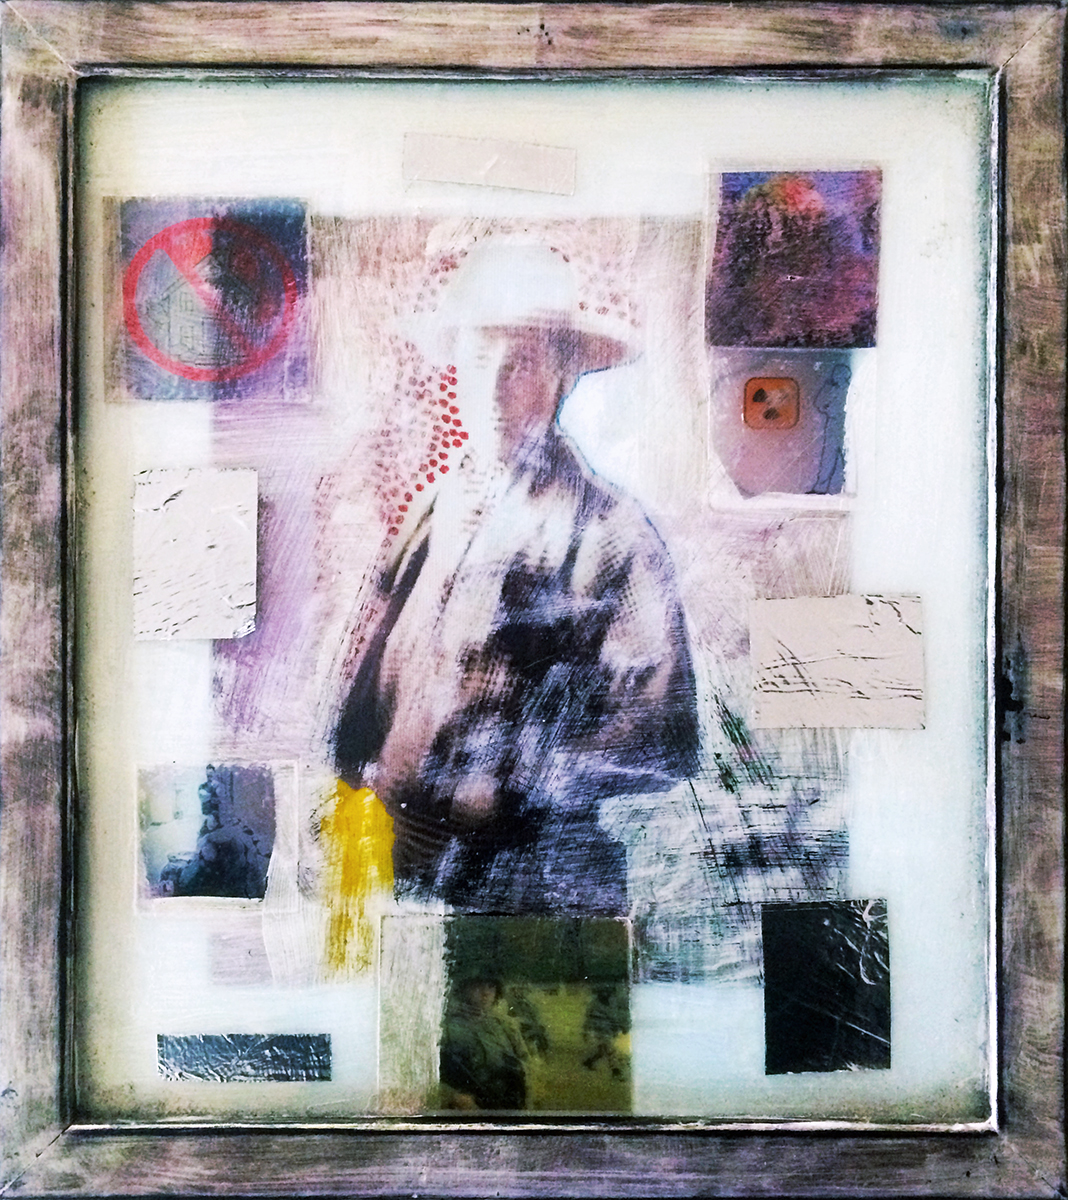 """Cowboy [3/4 Pose 2 Gun Hart]"" Mixed Media (Painted Frame with Silver Tape and Adhesive Prints) 13.5"" x 11.5"" 1997-2006 $950  One of the original COWBOYZ + COWGIRLZ ""2 Gun Hart"" series first exhibited at Four Crows Gallery, later at Dreamworks SKG (Nashville). Additional layers and materials added for ""A Prayer for Clean Water"" cycle of exhibits in Austin. This piece was installed at Pump Project for ""Overflow Show."""